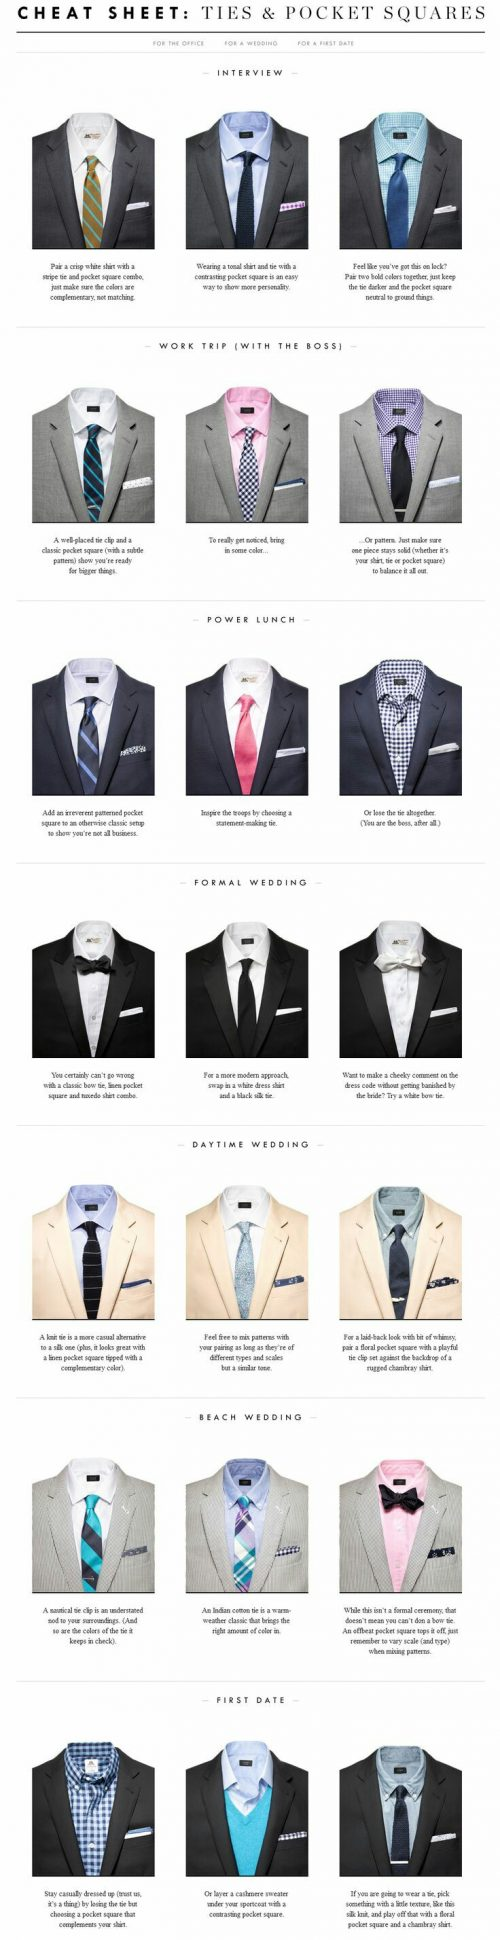 Men In Style: How To Effectively Use A Suit